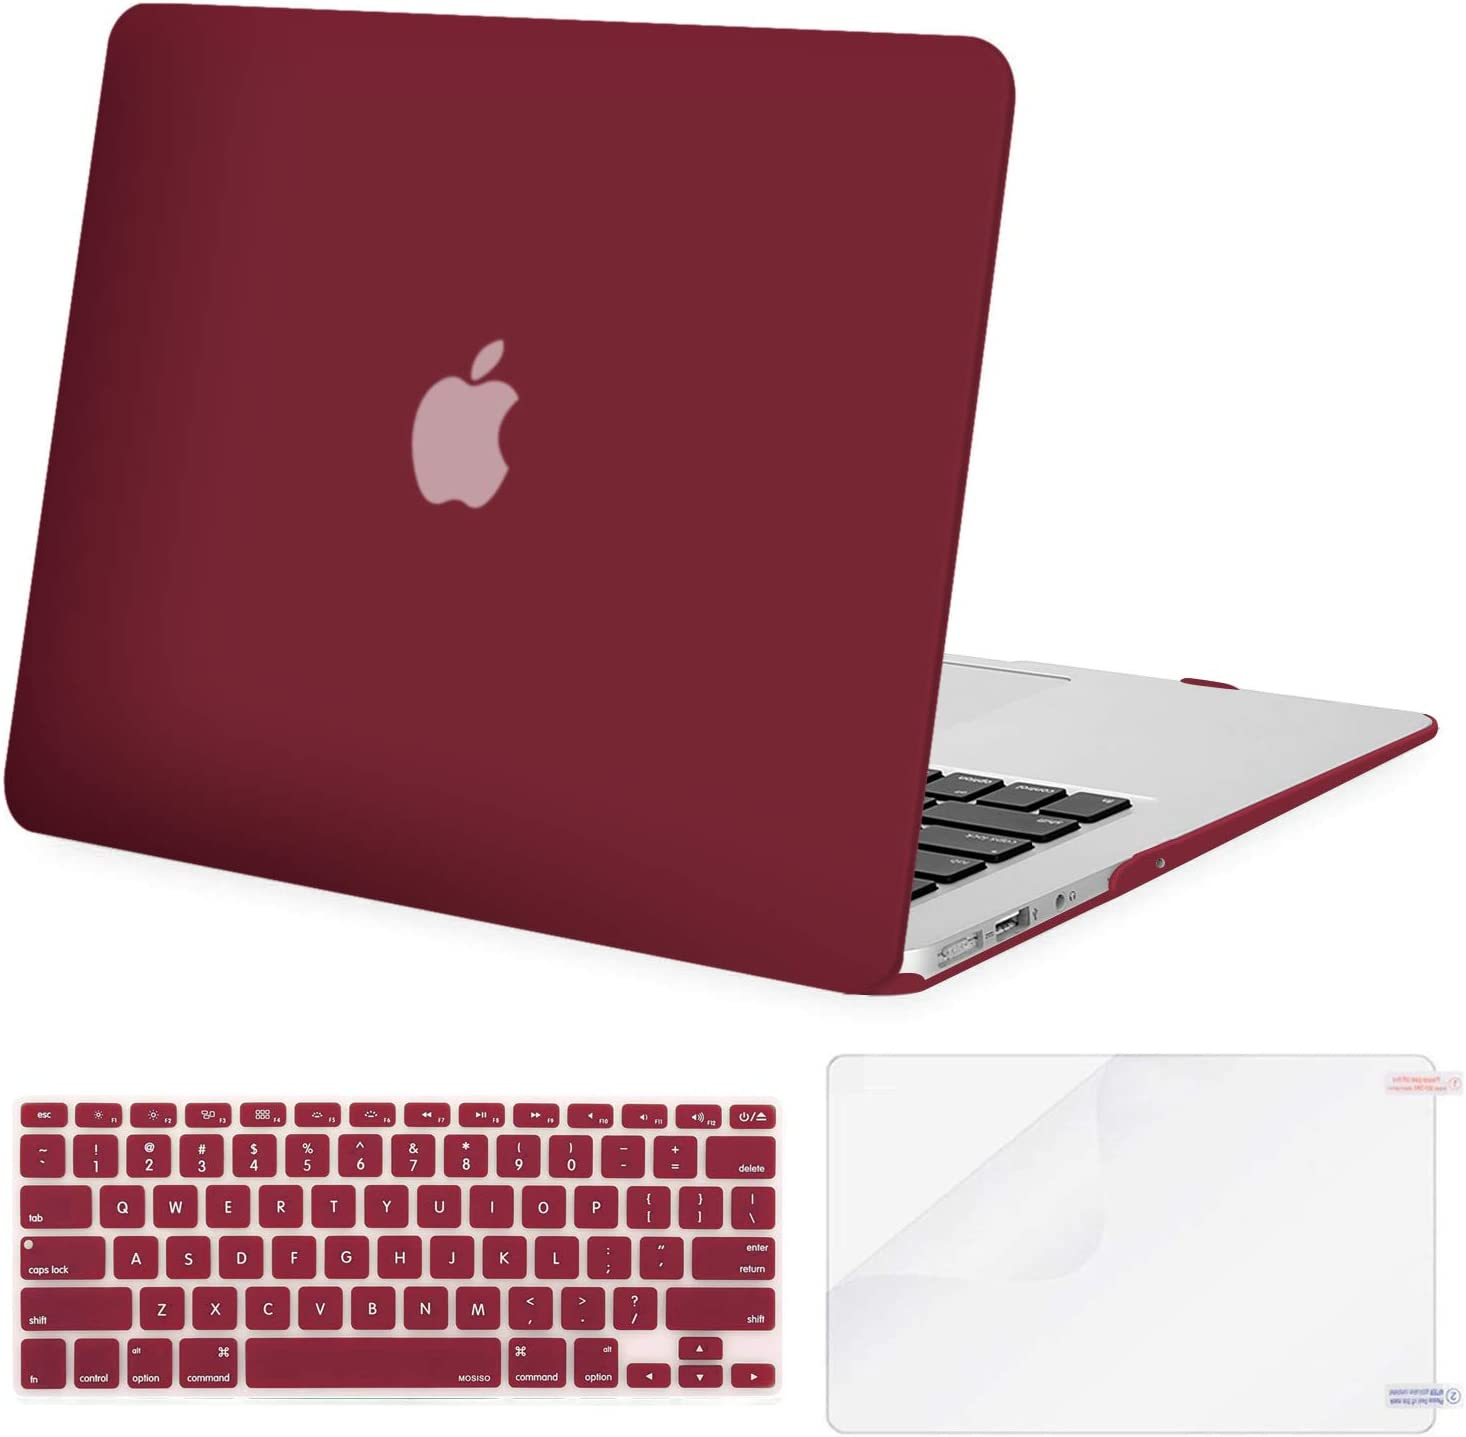 MOSISO Plastic Hard Shell Case & Keyboard Cover & Screen Protector Only Compatible with MacBook Air 13 inch (Models: A1369 & A1466, Older Version 2010-2017 Release), Wine Red